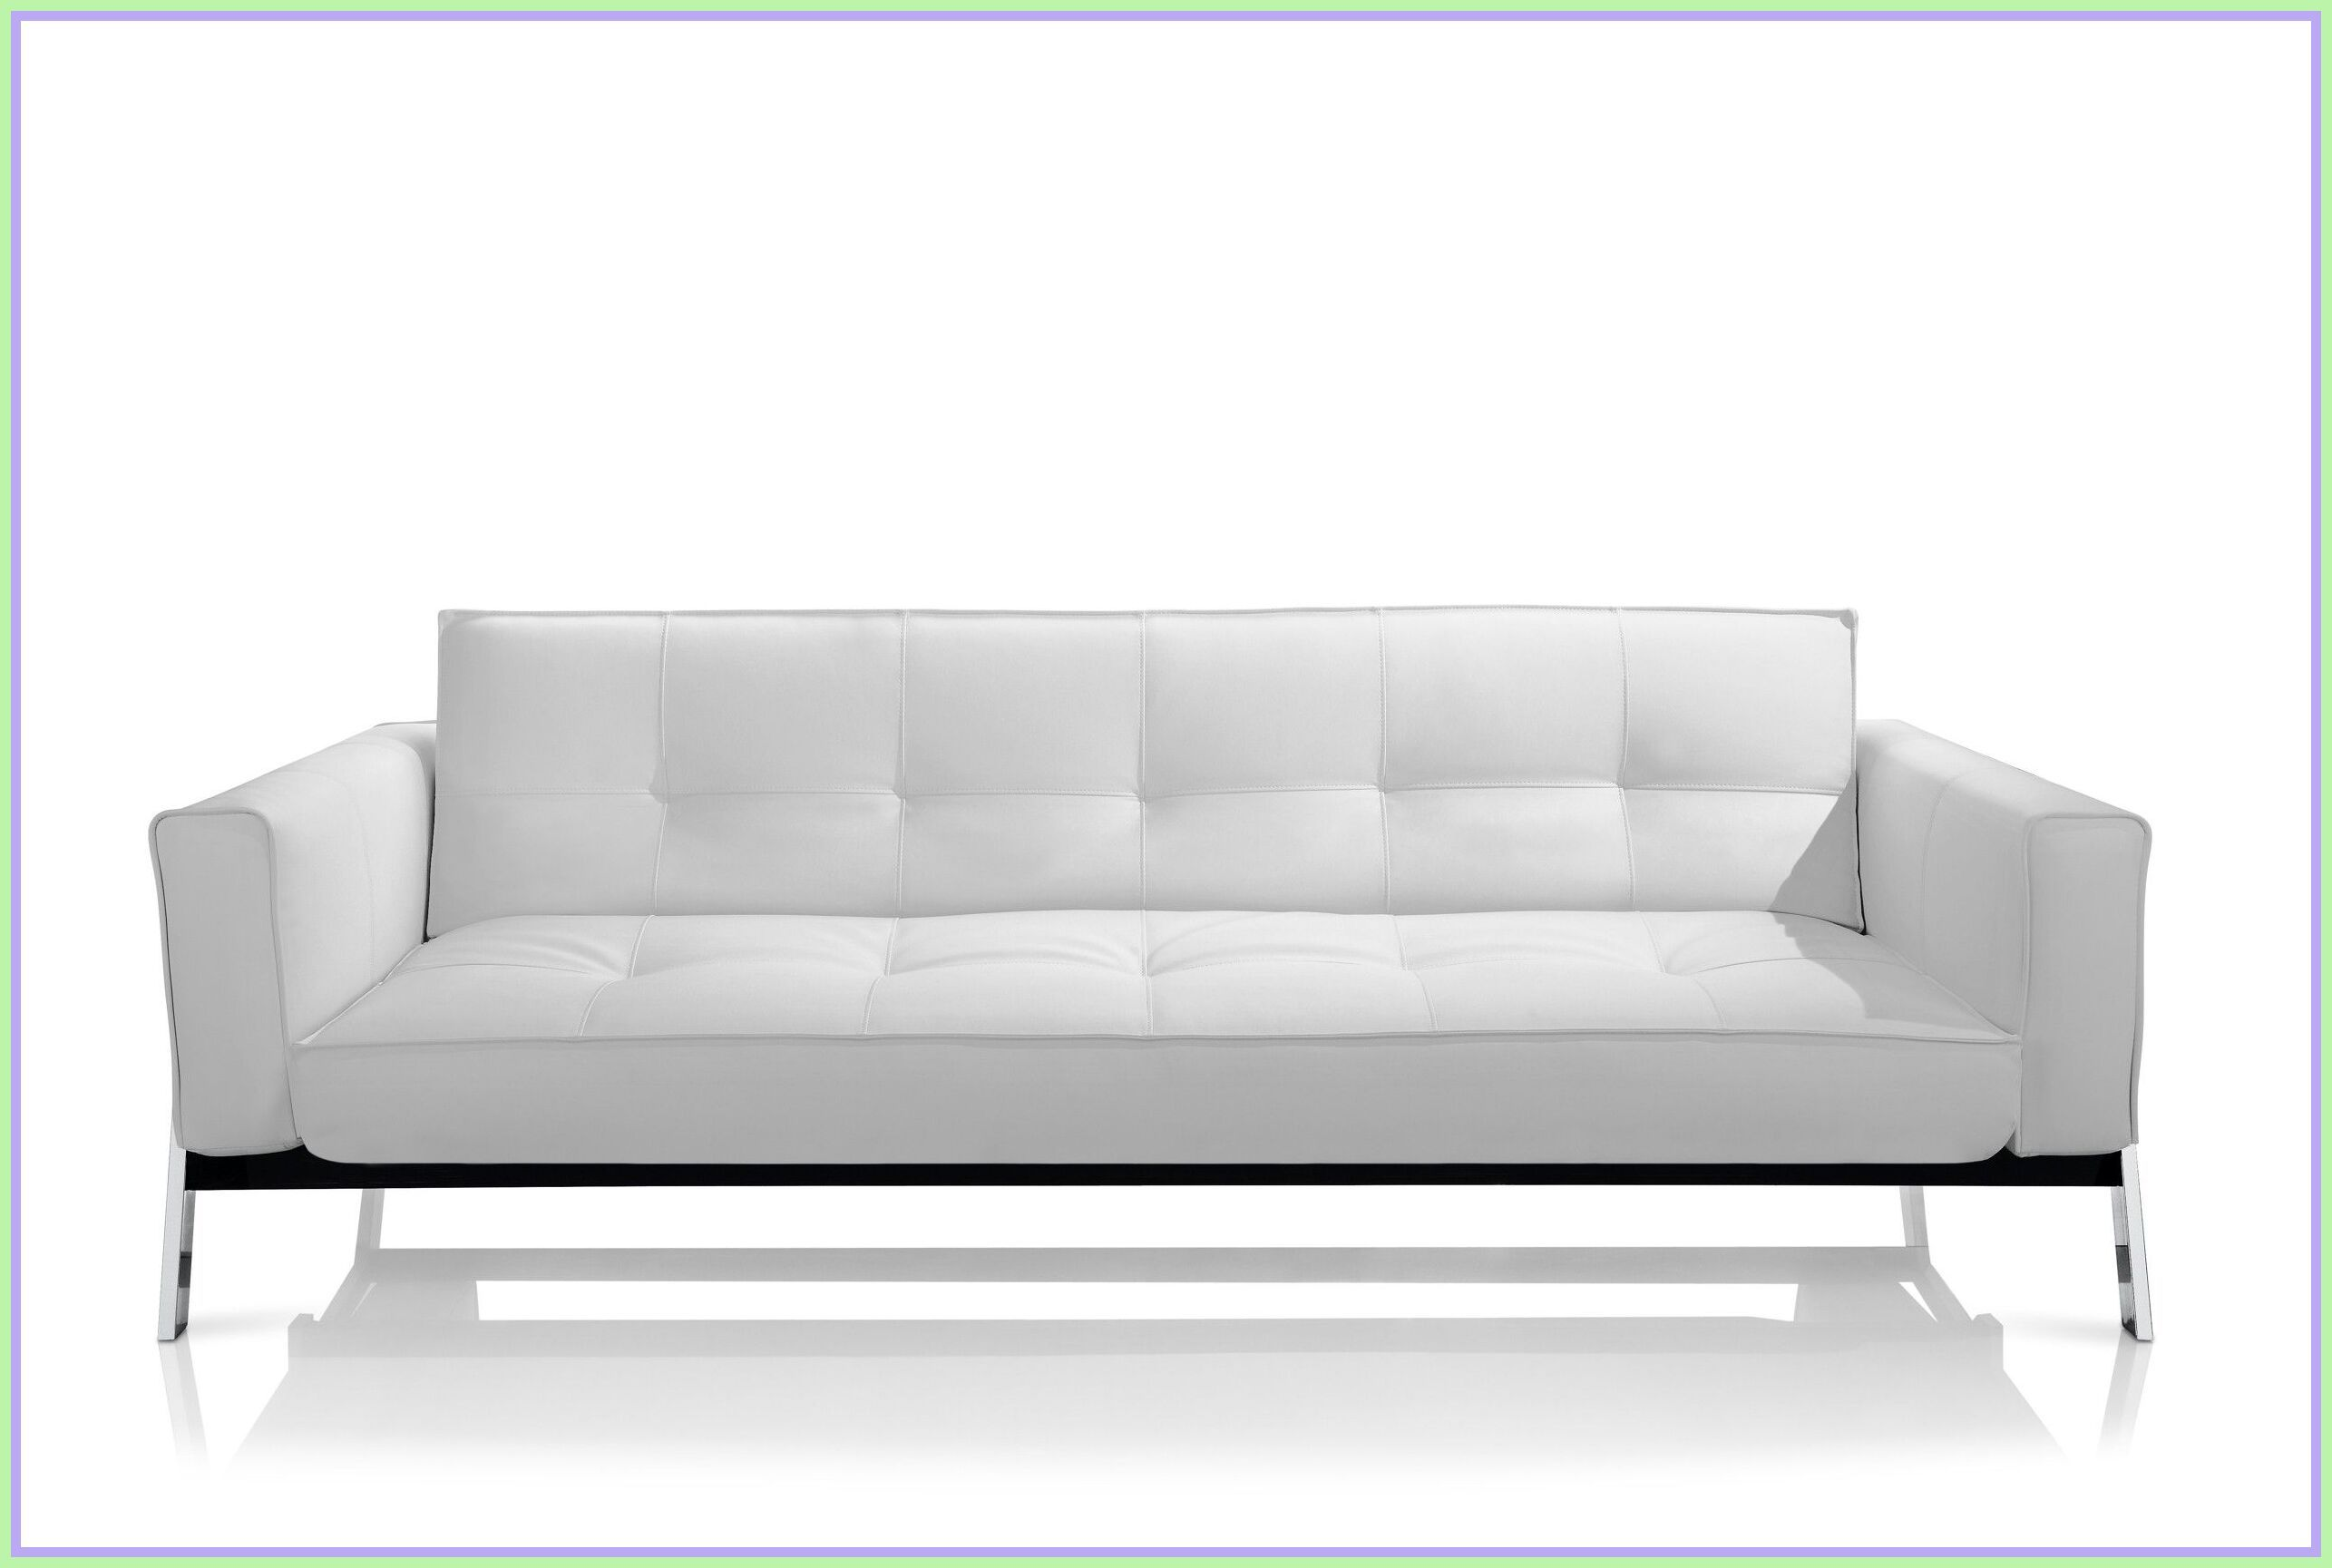 92 Reference Of Modern White Sofa Chairs In 2020 Sofa Weiss Sofastuhl Vintage Sofa